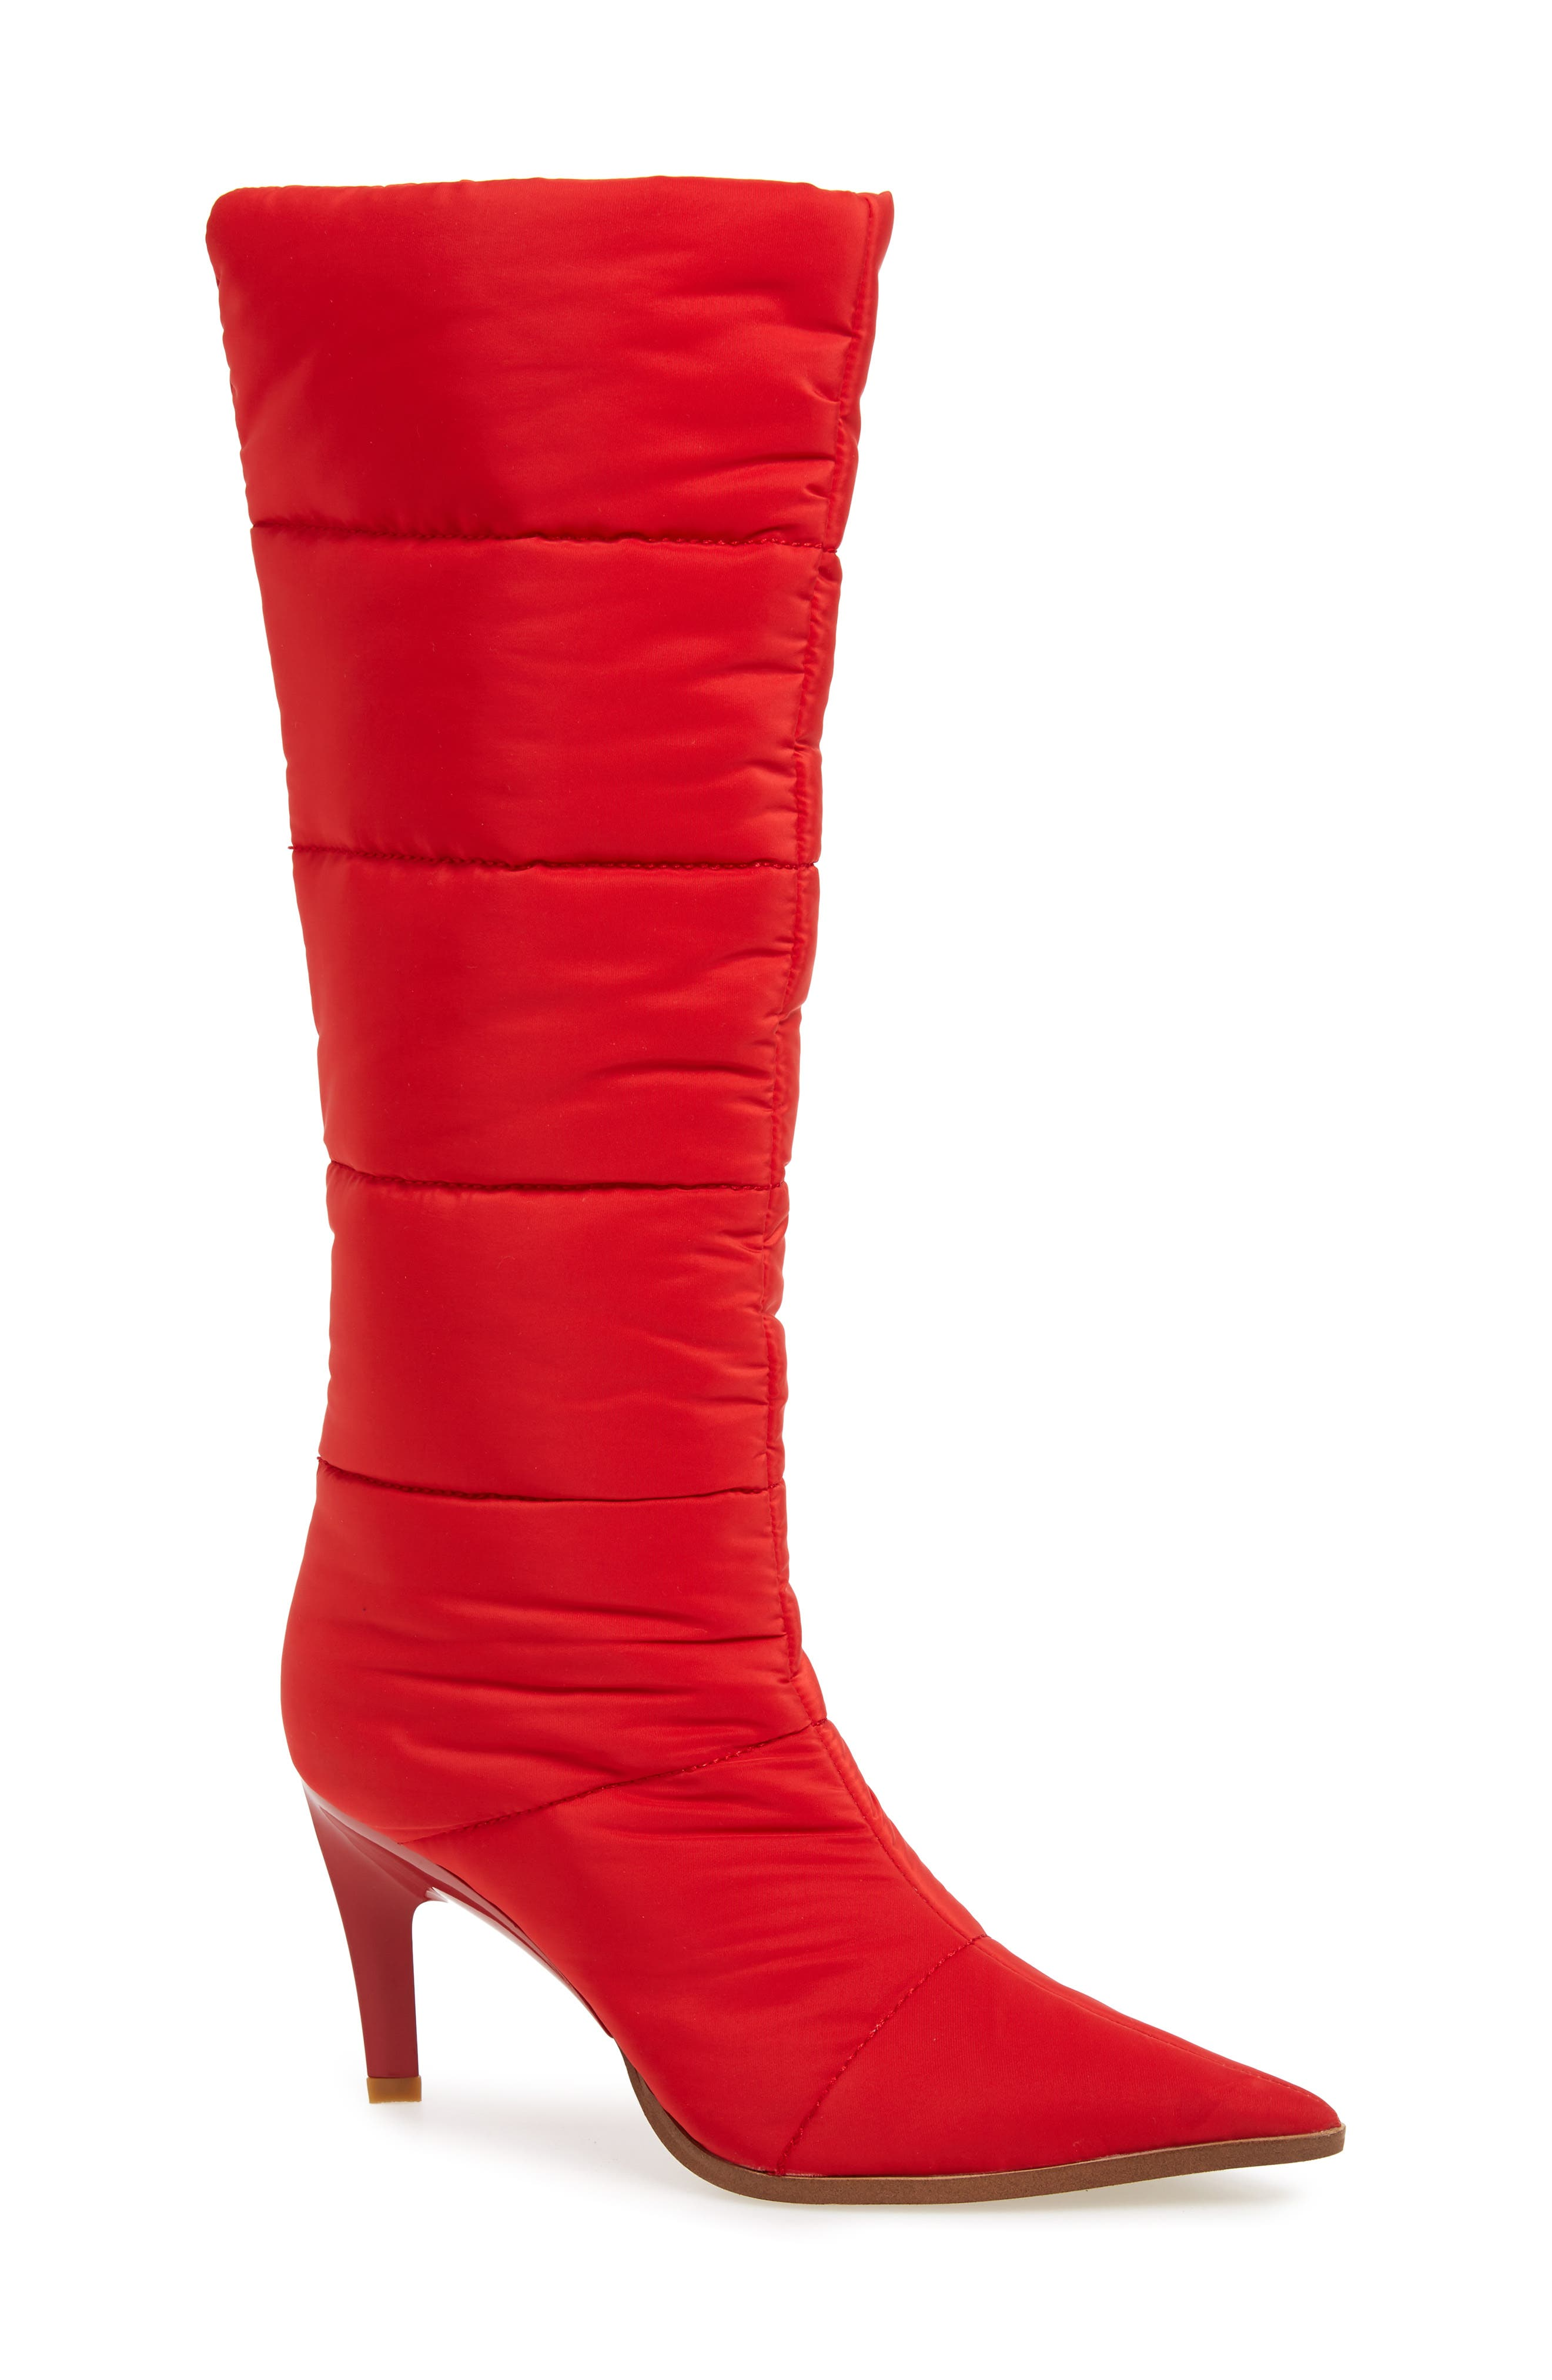 Apris Knee High Puffer Boot,                             Main thumbnail 1, color,                             RED FABRIC